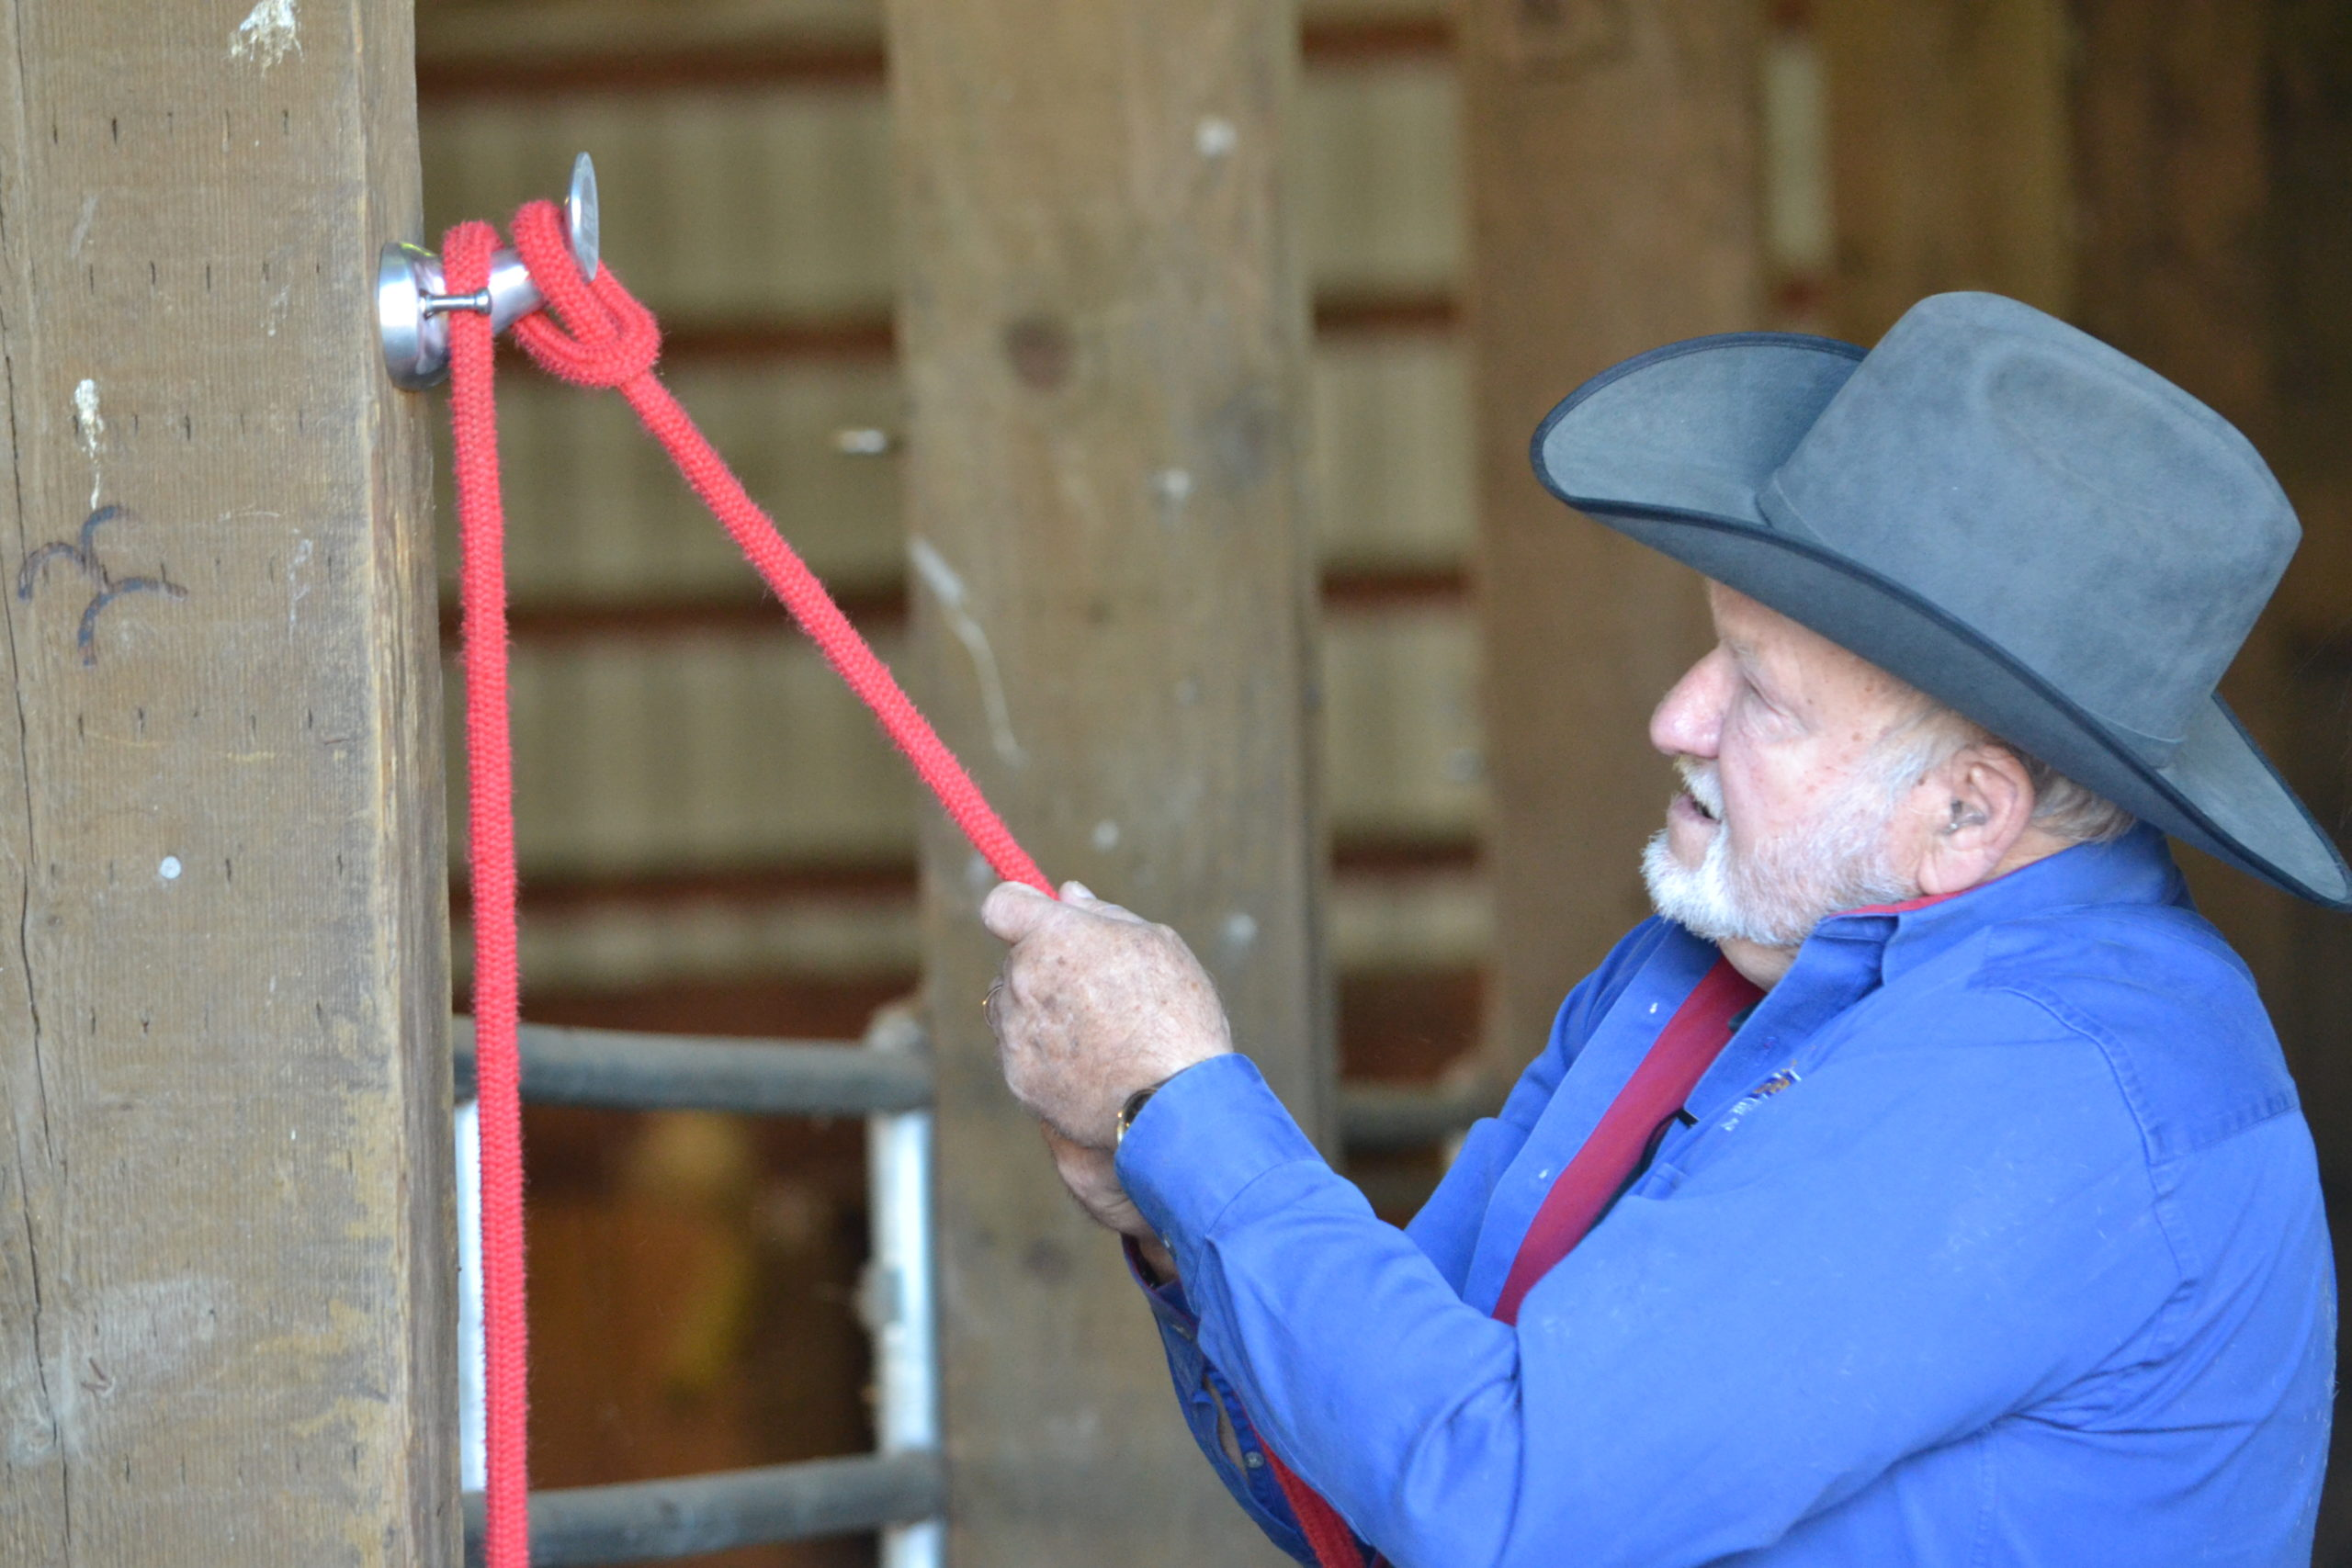 3.  Finally pull down on the horse end of the lead rope to secure it and feel the hold your rope creates.  Different lead ropes will have different levels of hold depending on the material and condition.